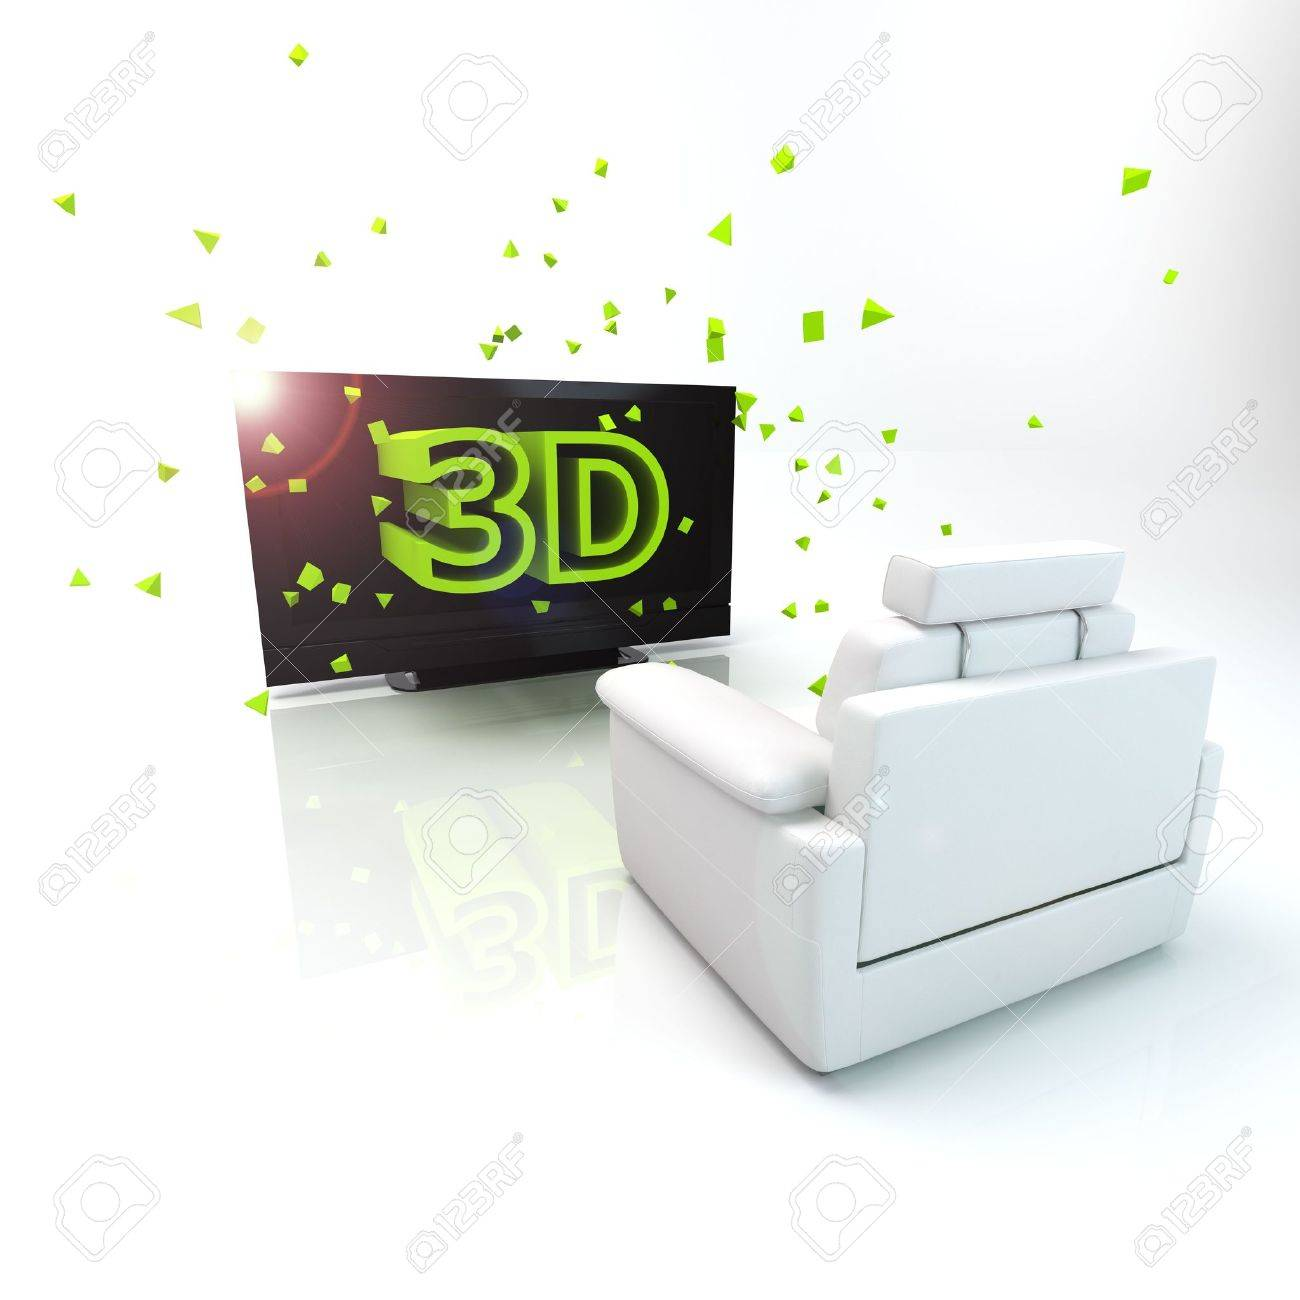 3D TV concept image. Stock Photo - 7472176